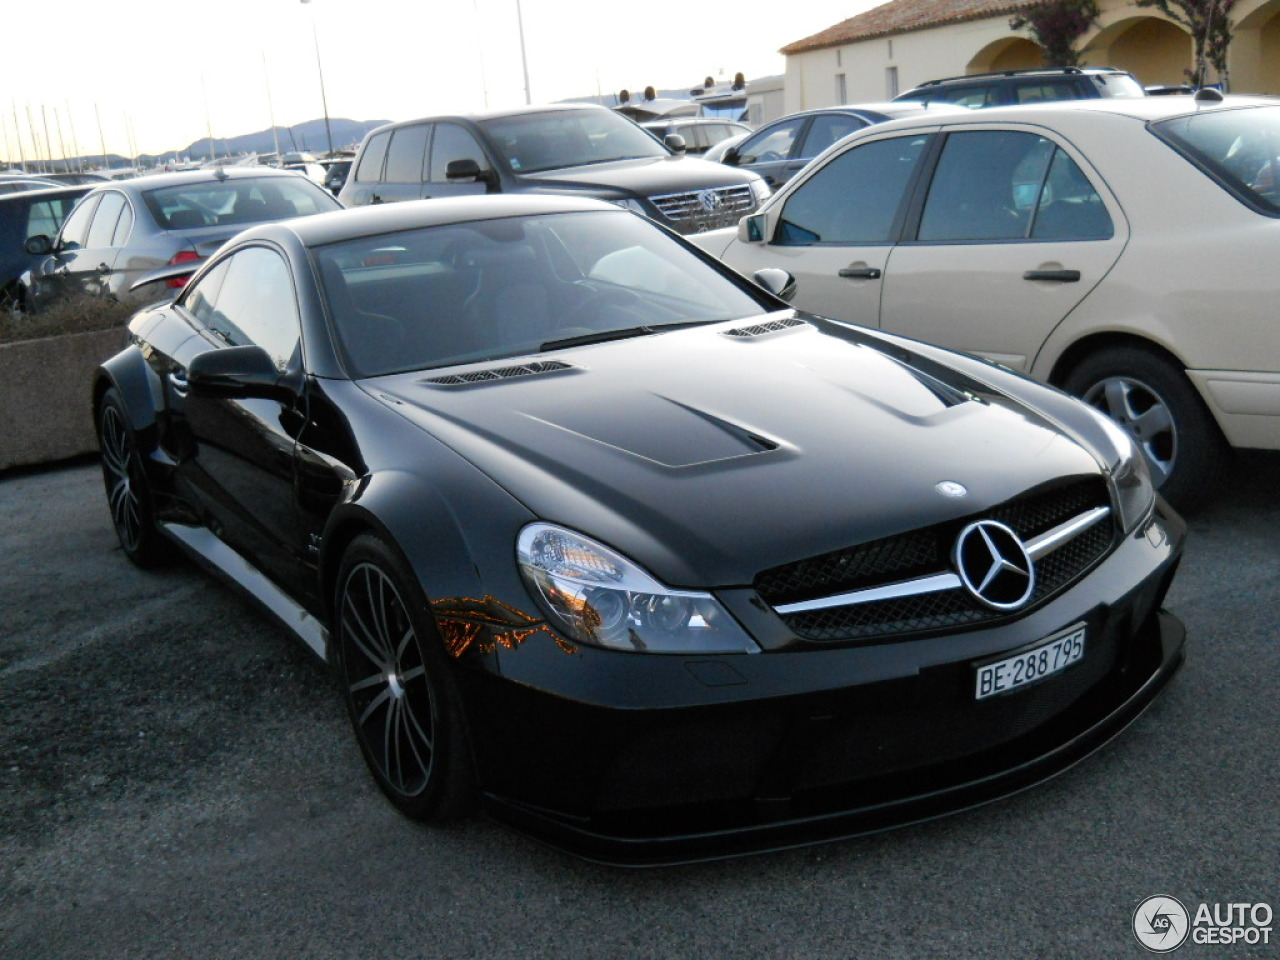 Mercedes benz sl 65 amg black series 24 march 2013 for Mercedes benz sl65 amg black series price